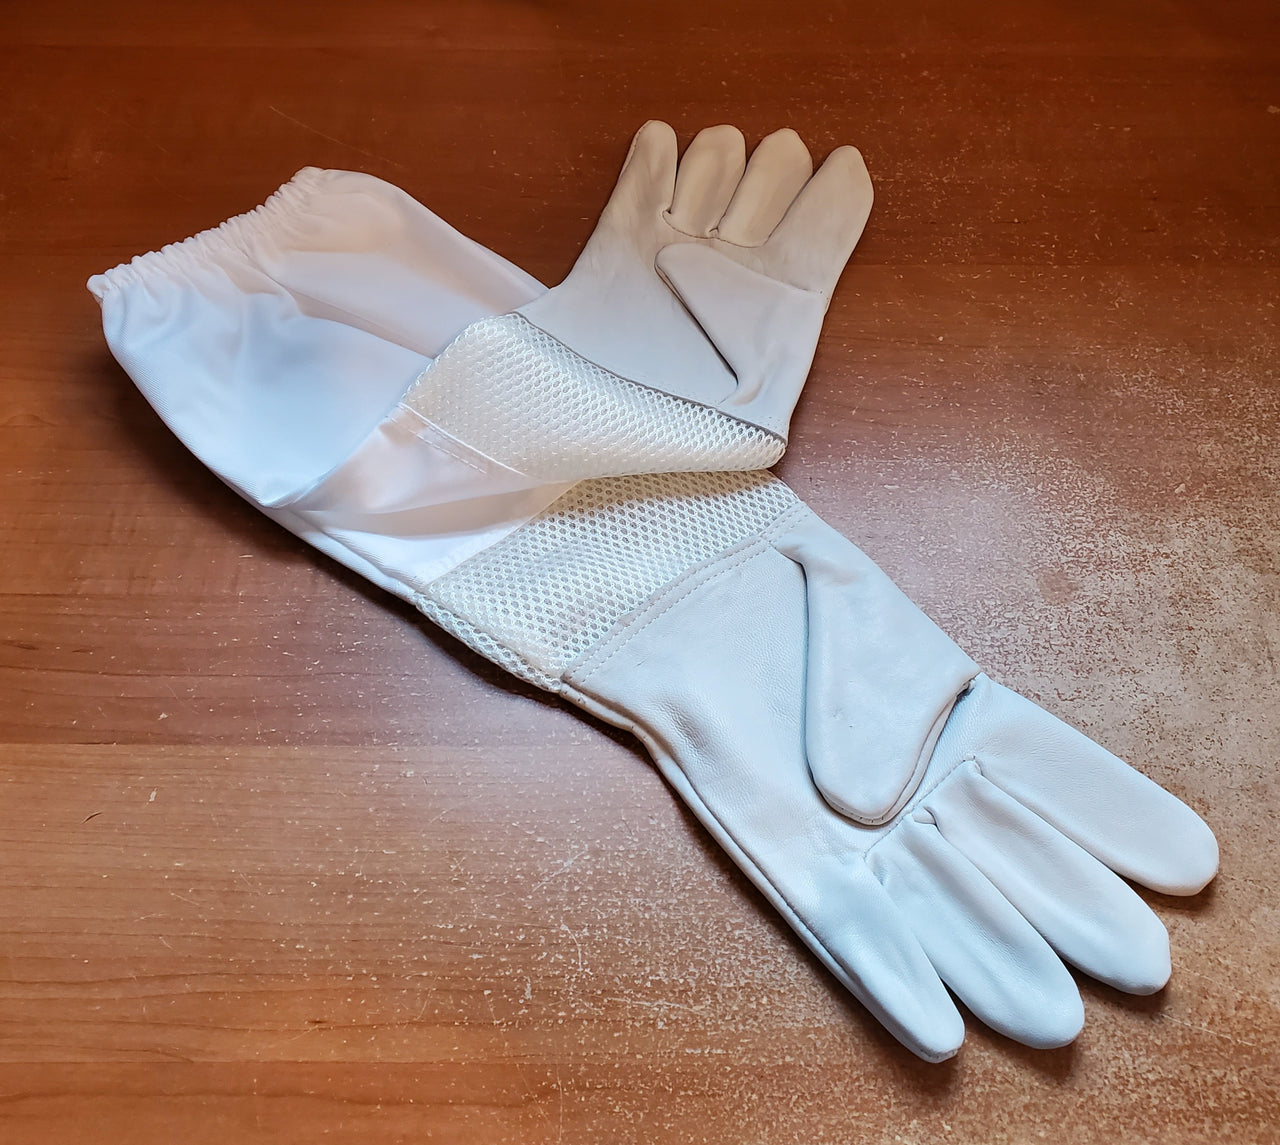 BZ36- Economy Vented Gloves